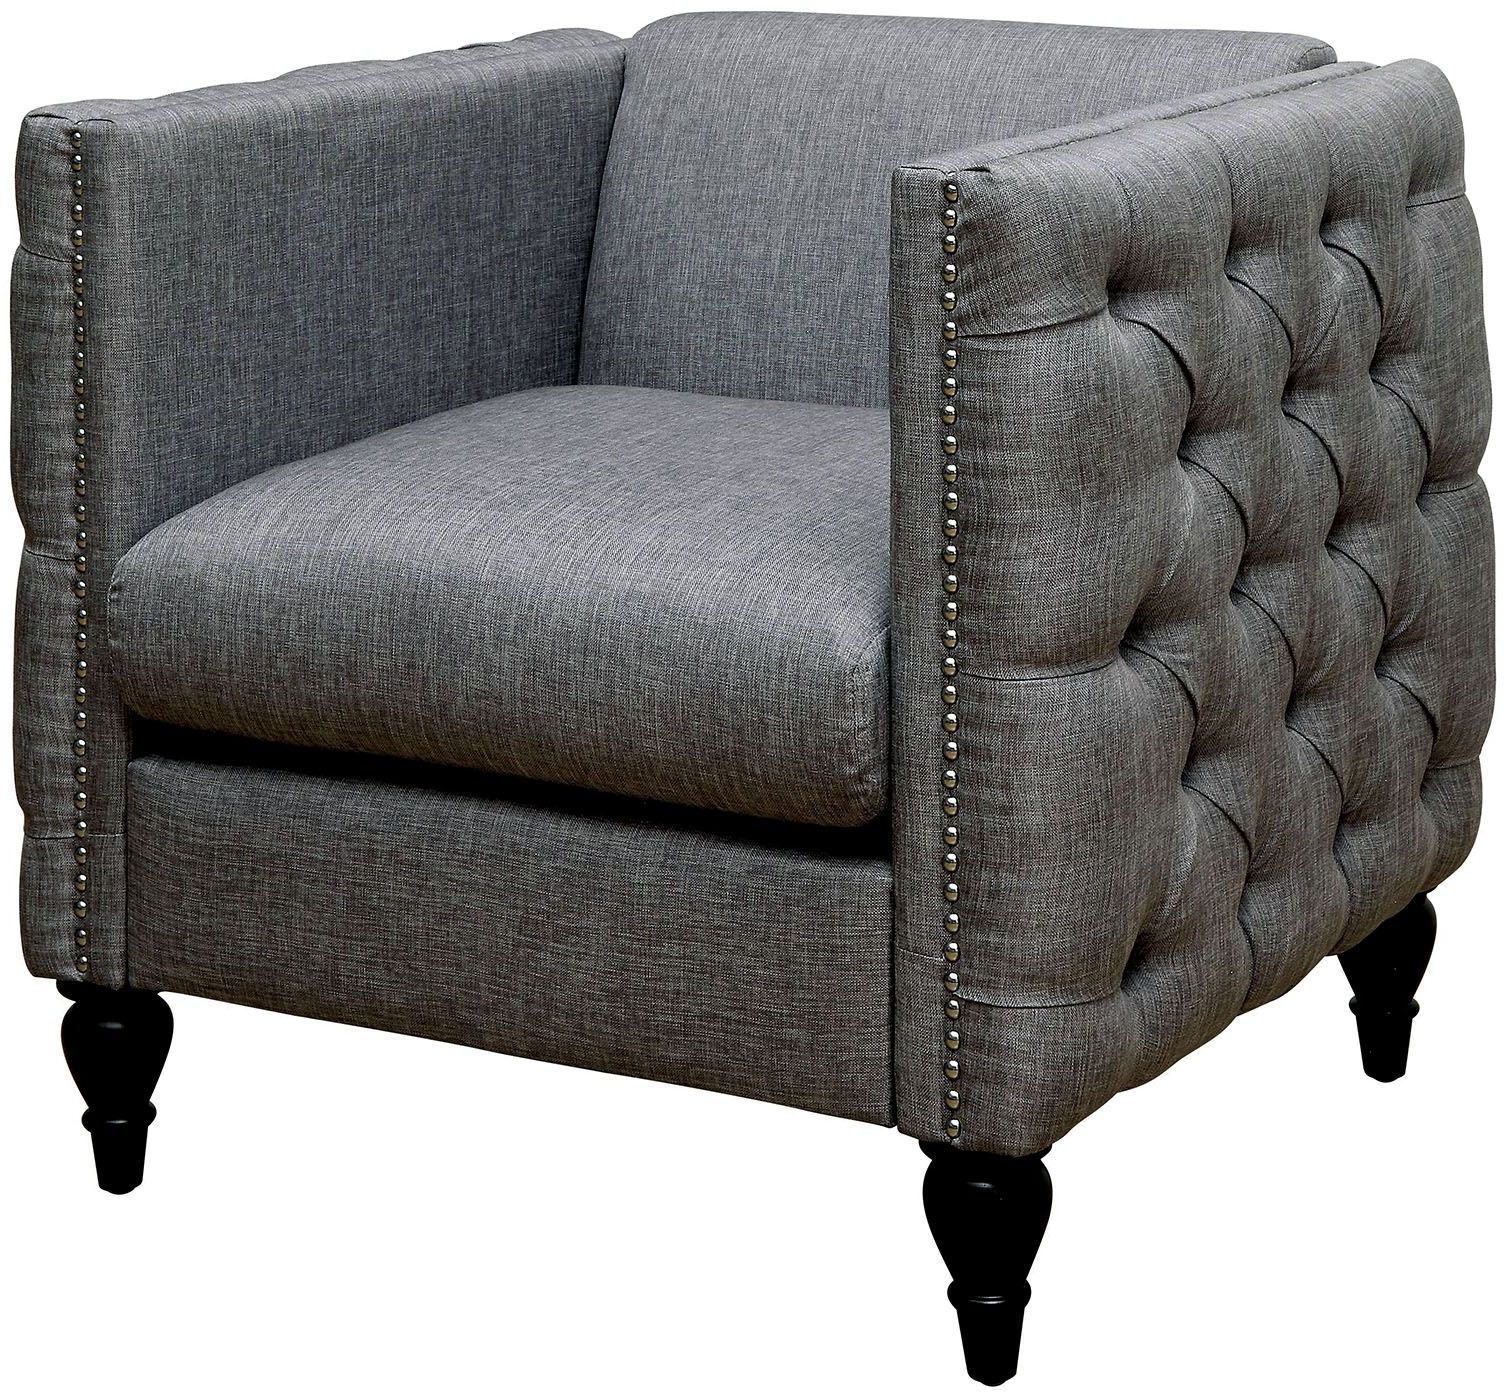 Emer Gray Loveseat from Furniture of America